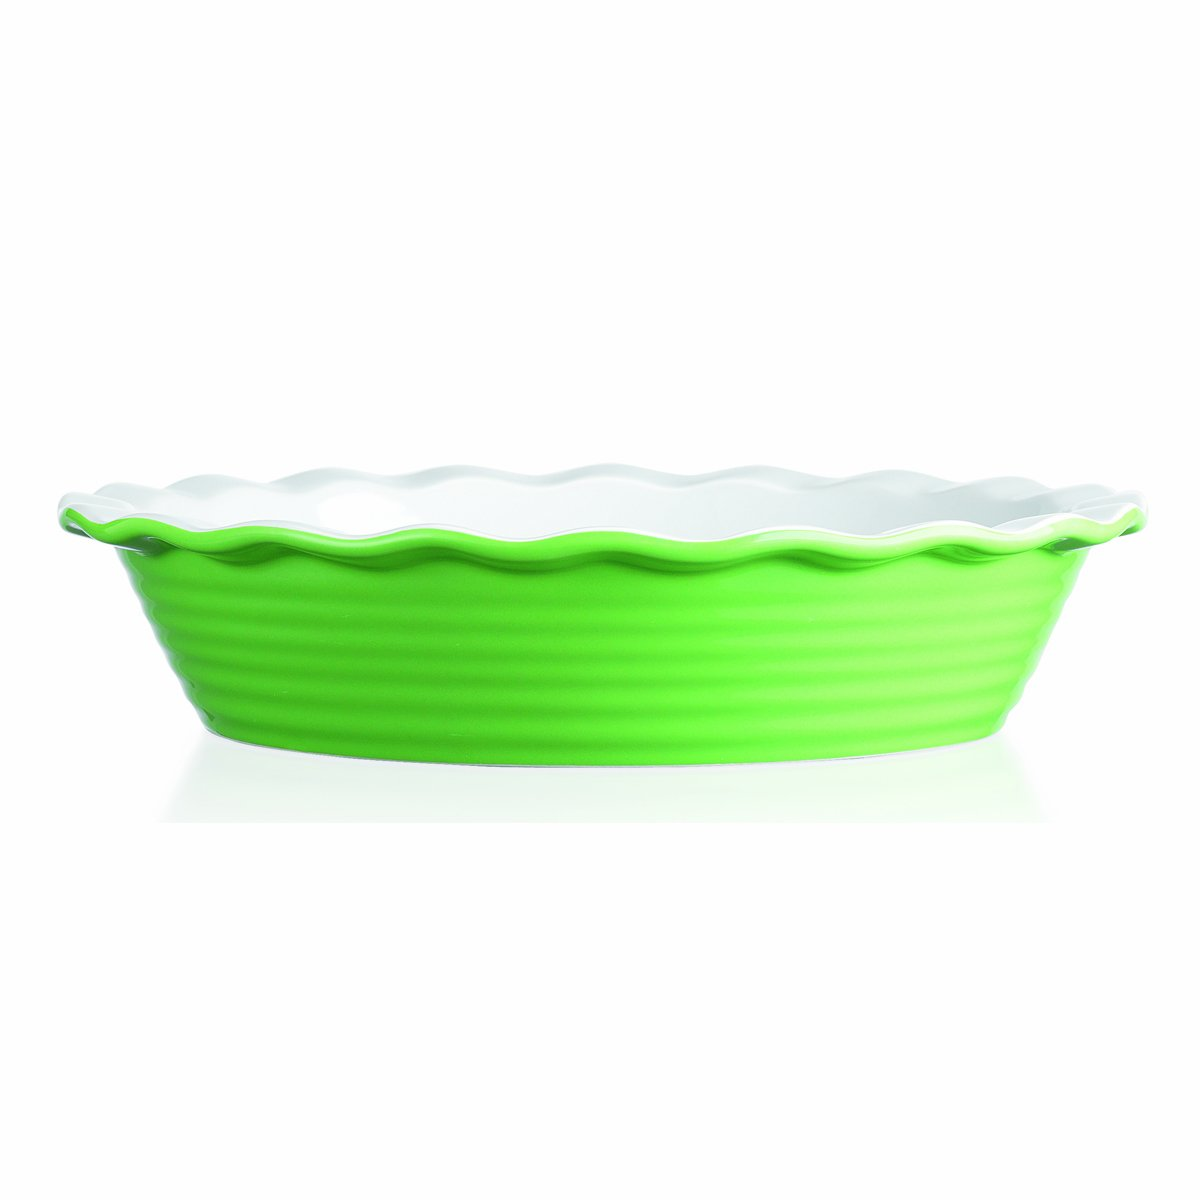 Home Essentials Lime Pie Plate, 10.25''D